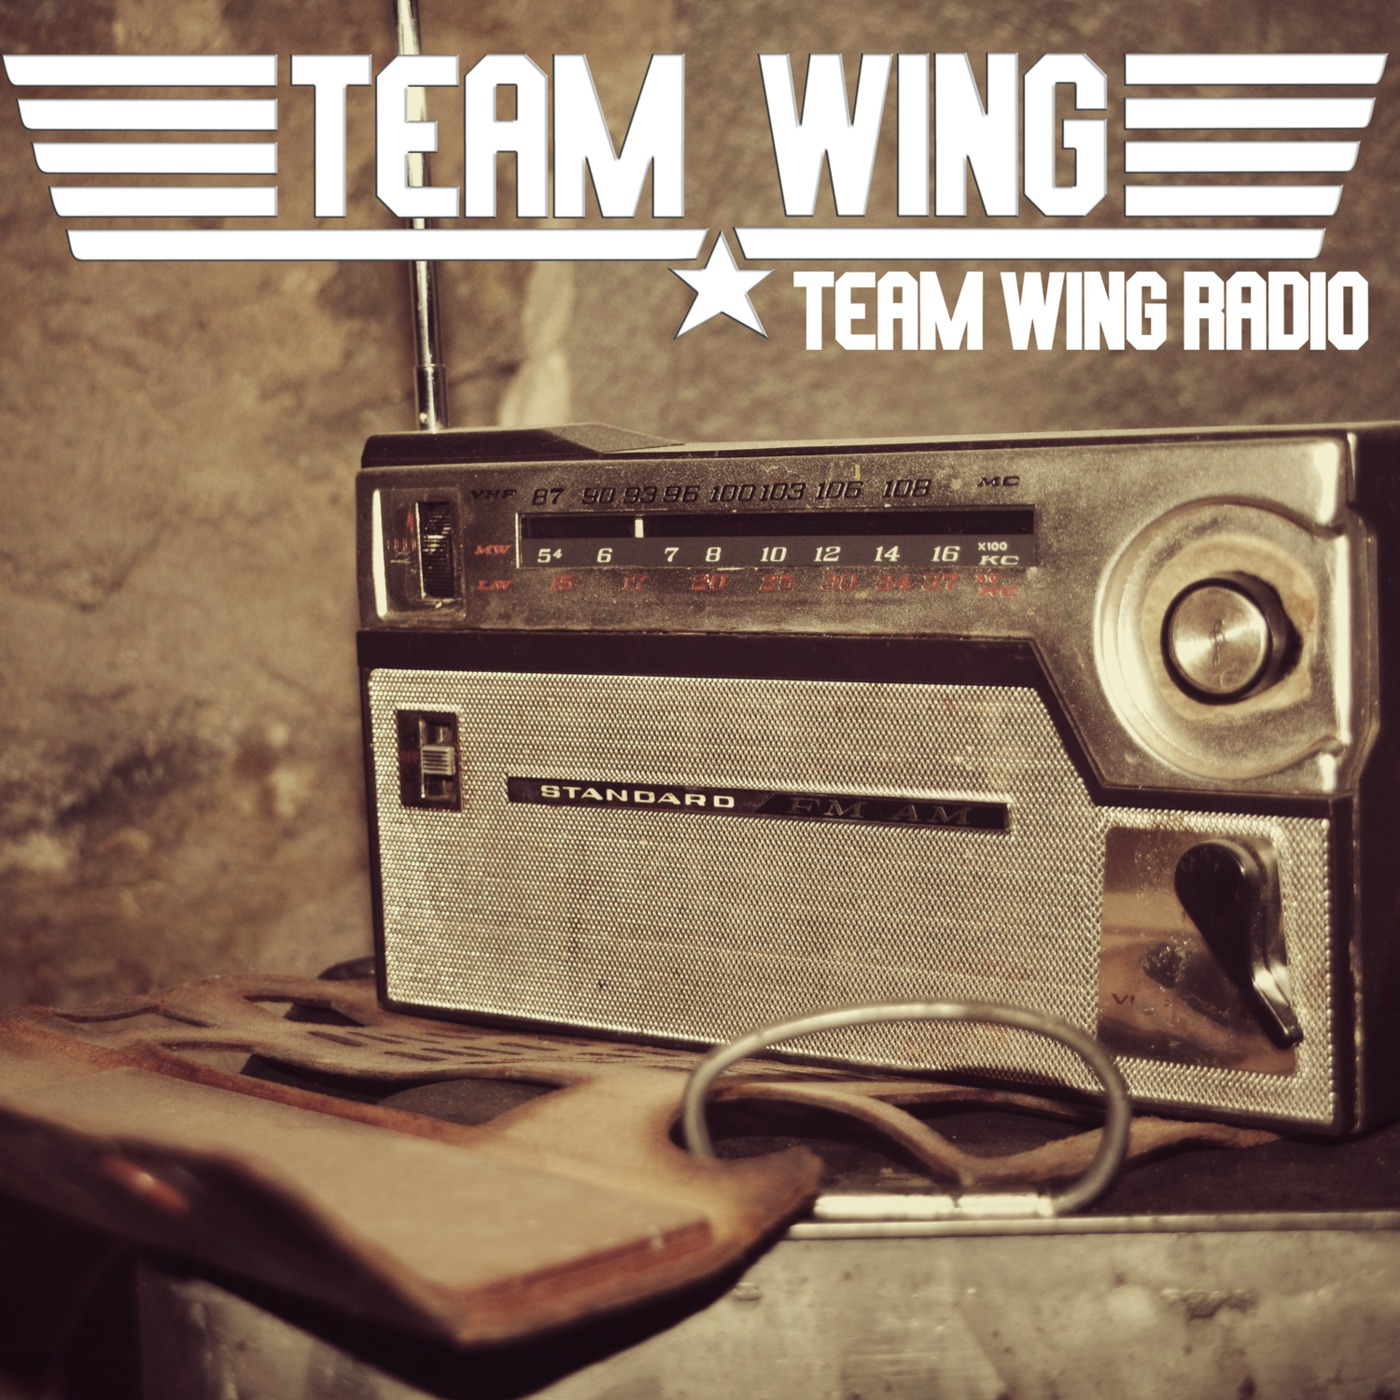 Team Wing Radio